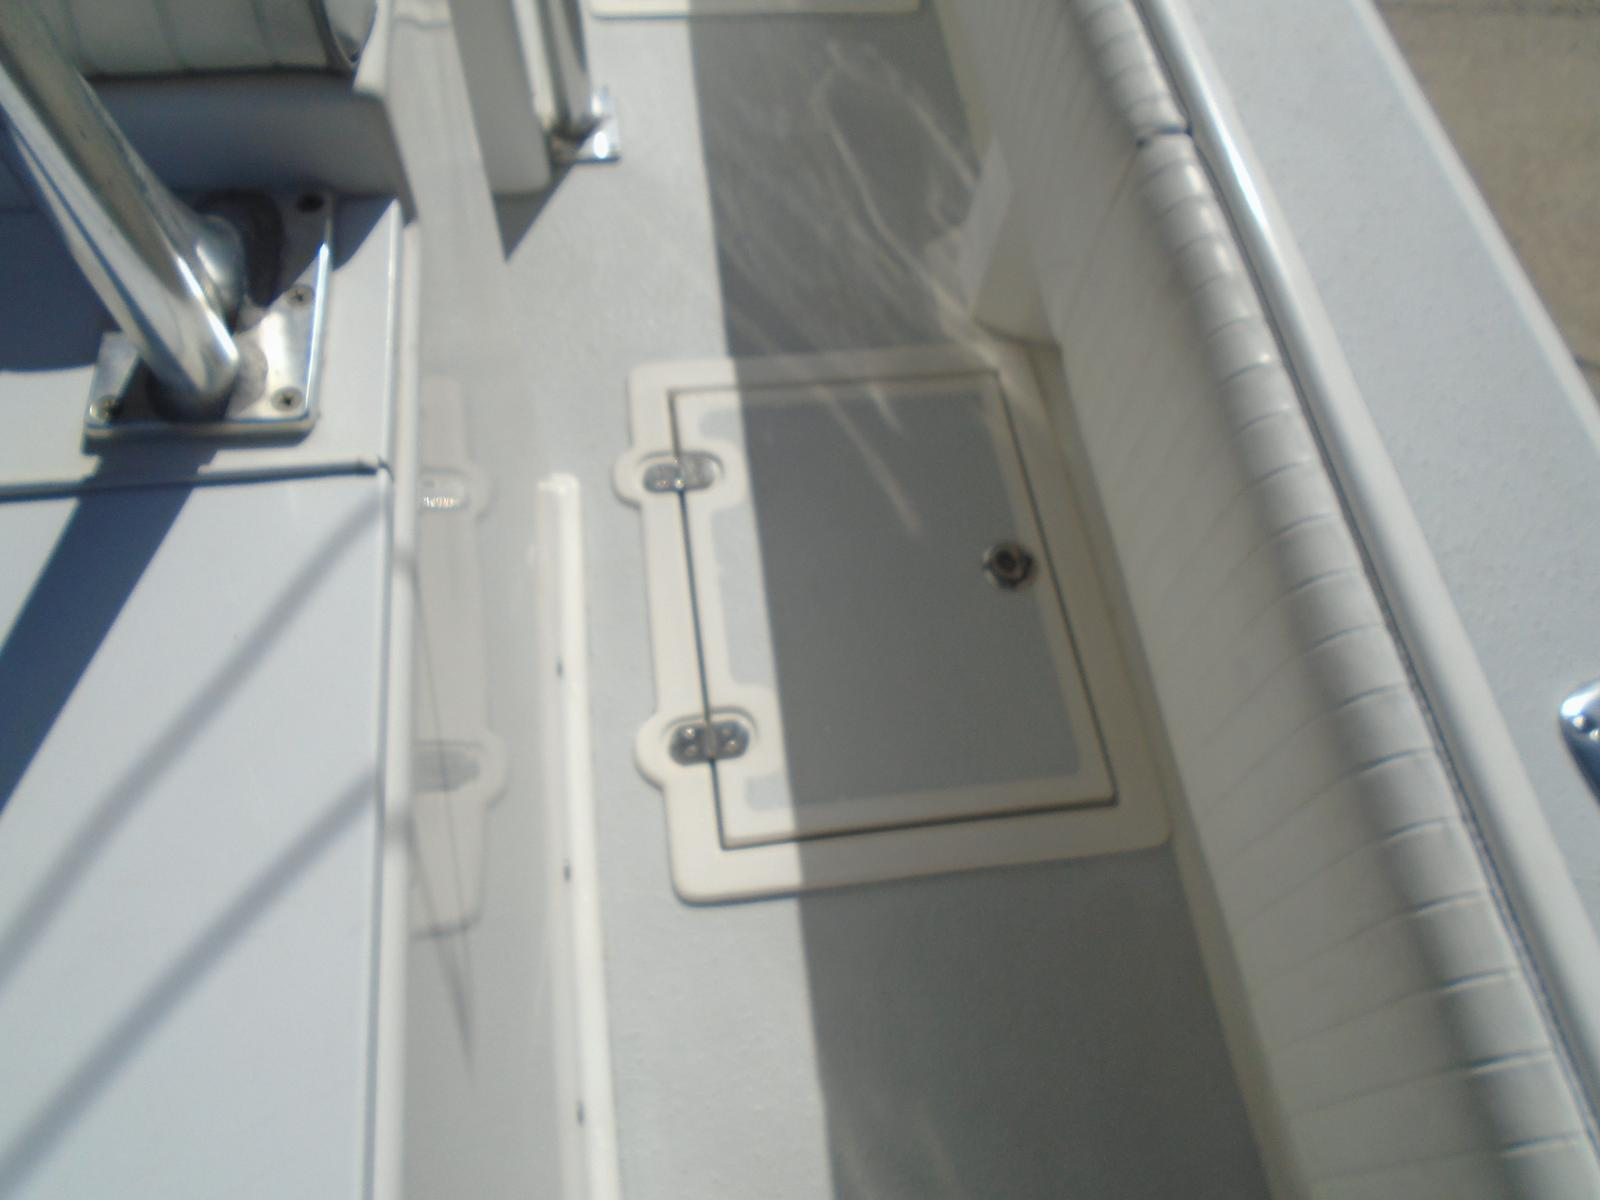 2007 Sabalo boat for sale, model of the boat is 41 Custom CC & Image # 5 of 50